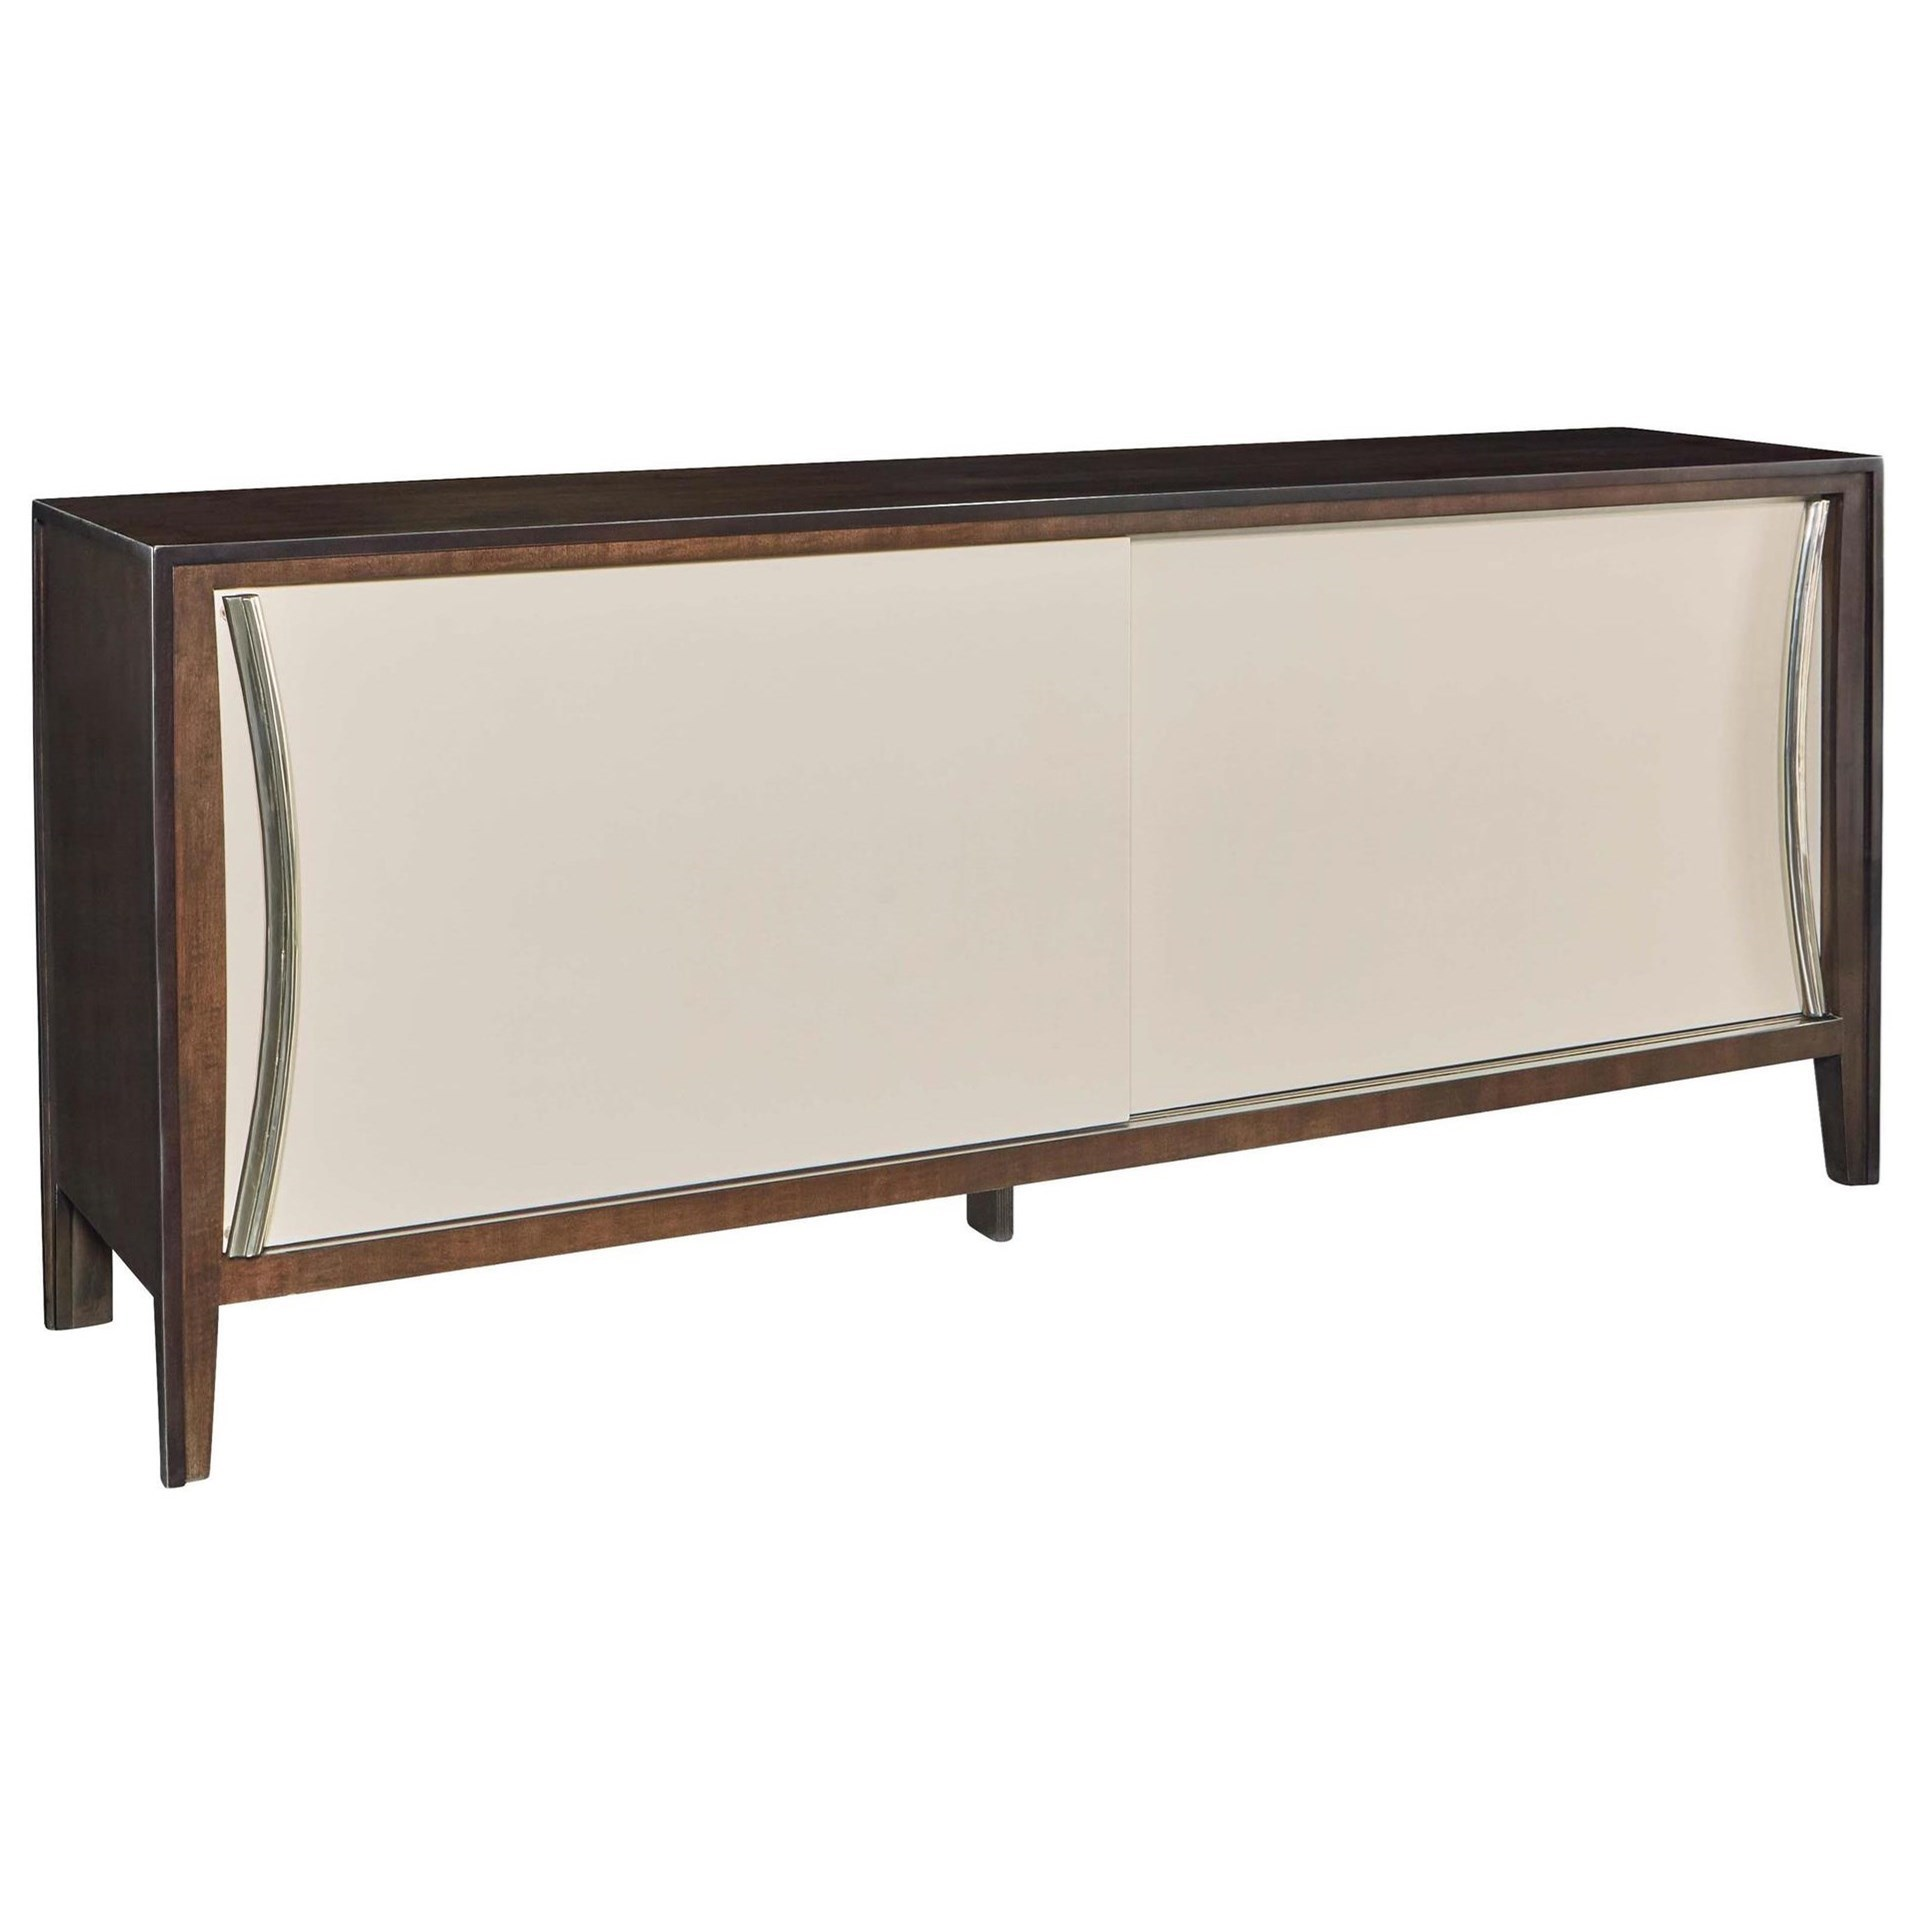 Wall Art Credence Deco La Credence Dining Credenza With Sliding Doors By Fine Furniture Design At Baer S Furniture